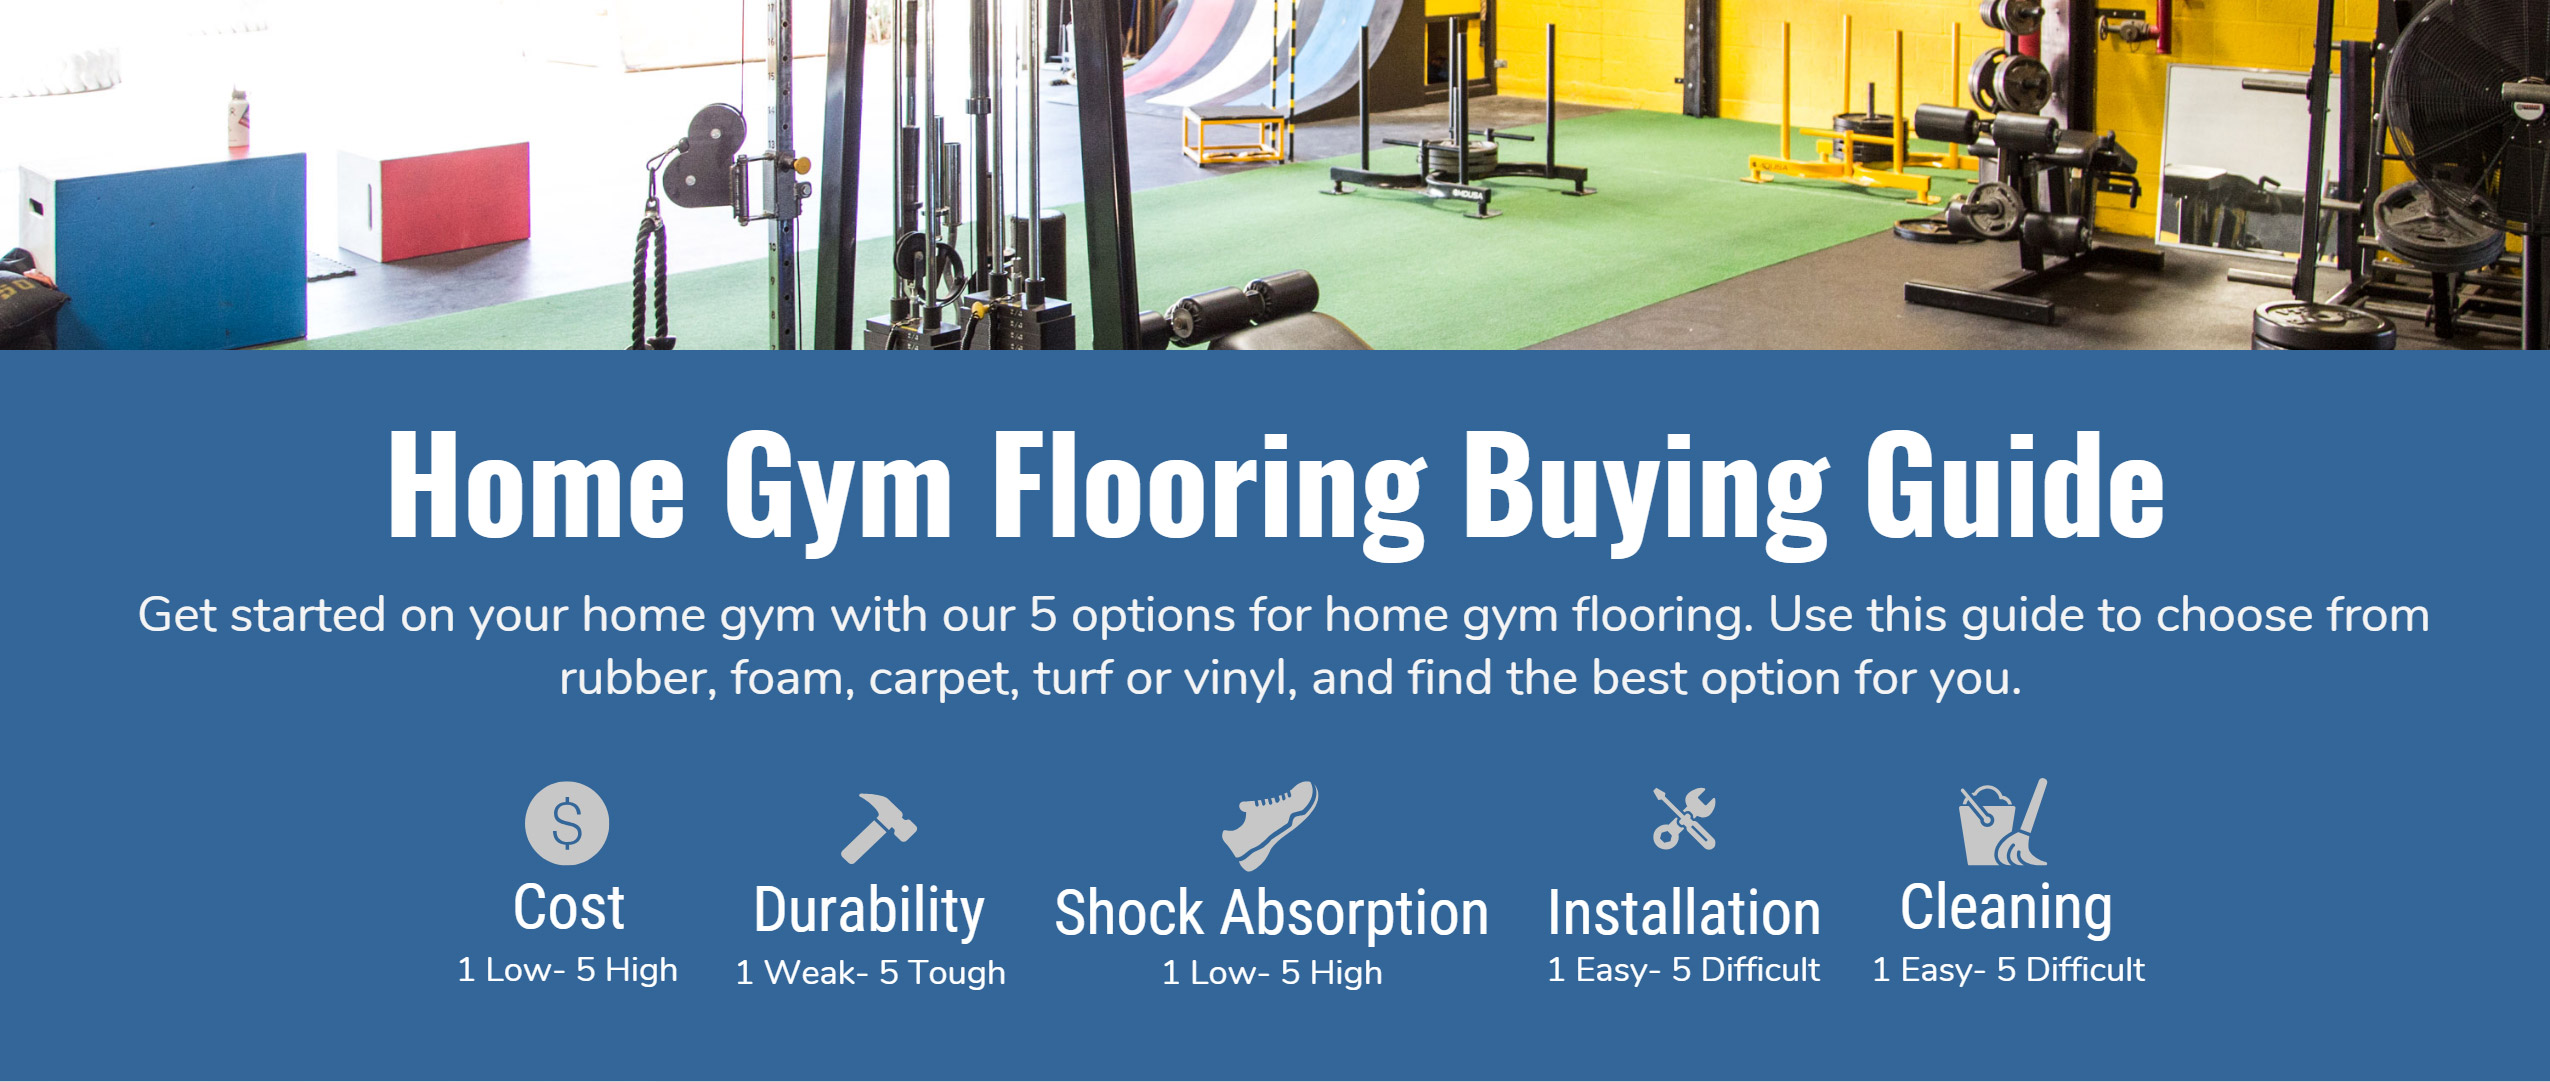 Buying guide 5 options for home gym flooring for Carpet buying guide